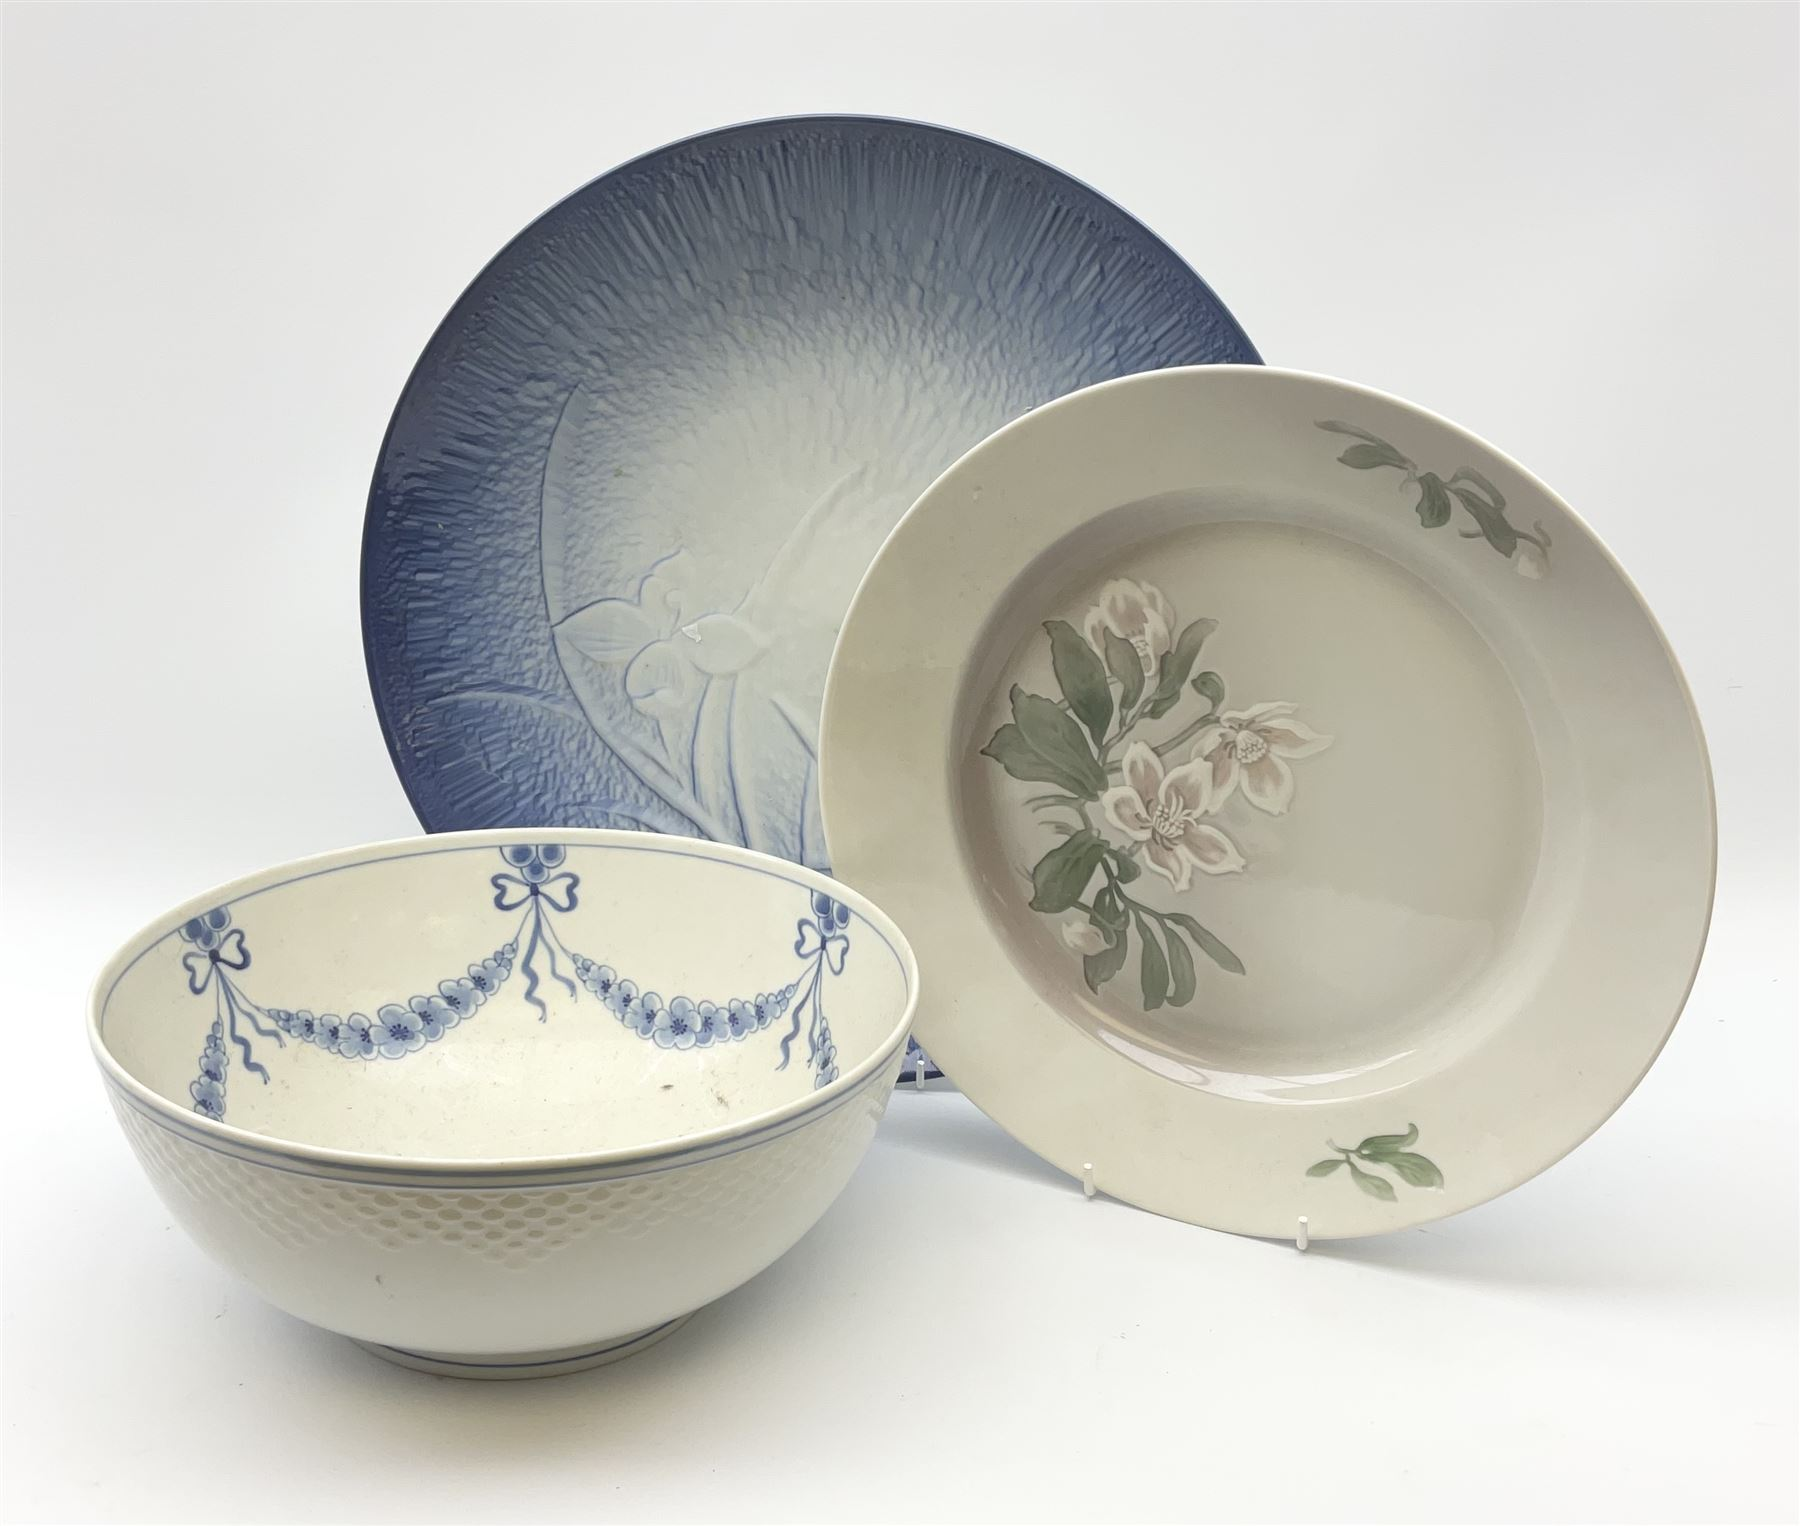 A Bing and Grondahl dish with moulded rim and blue swag decoration to the interior